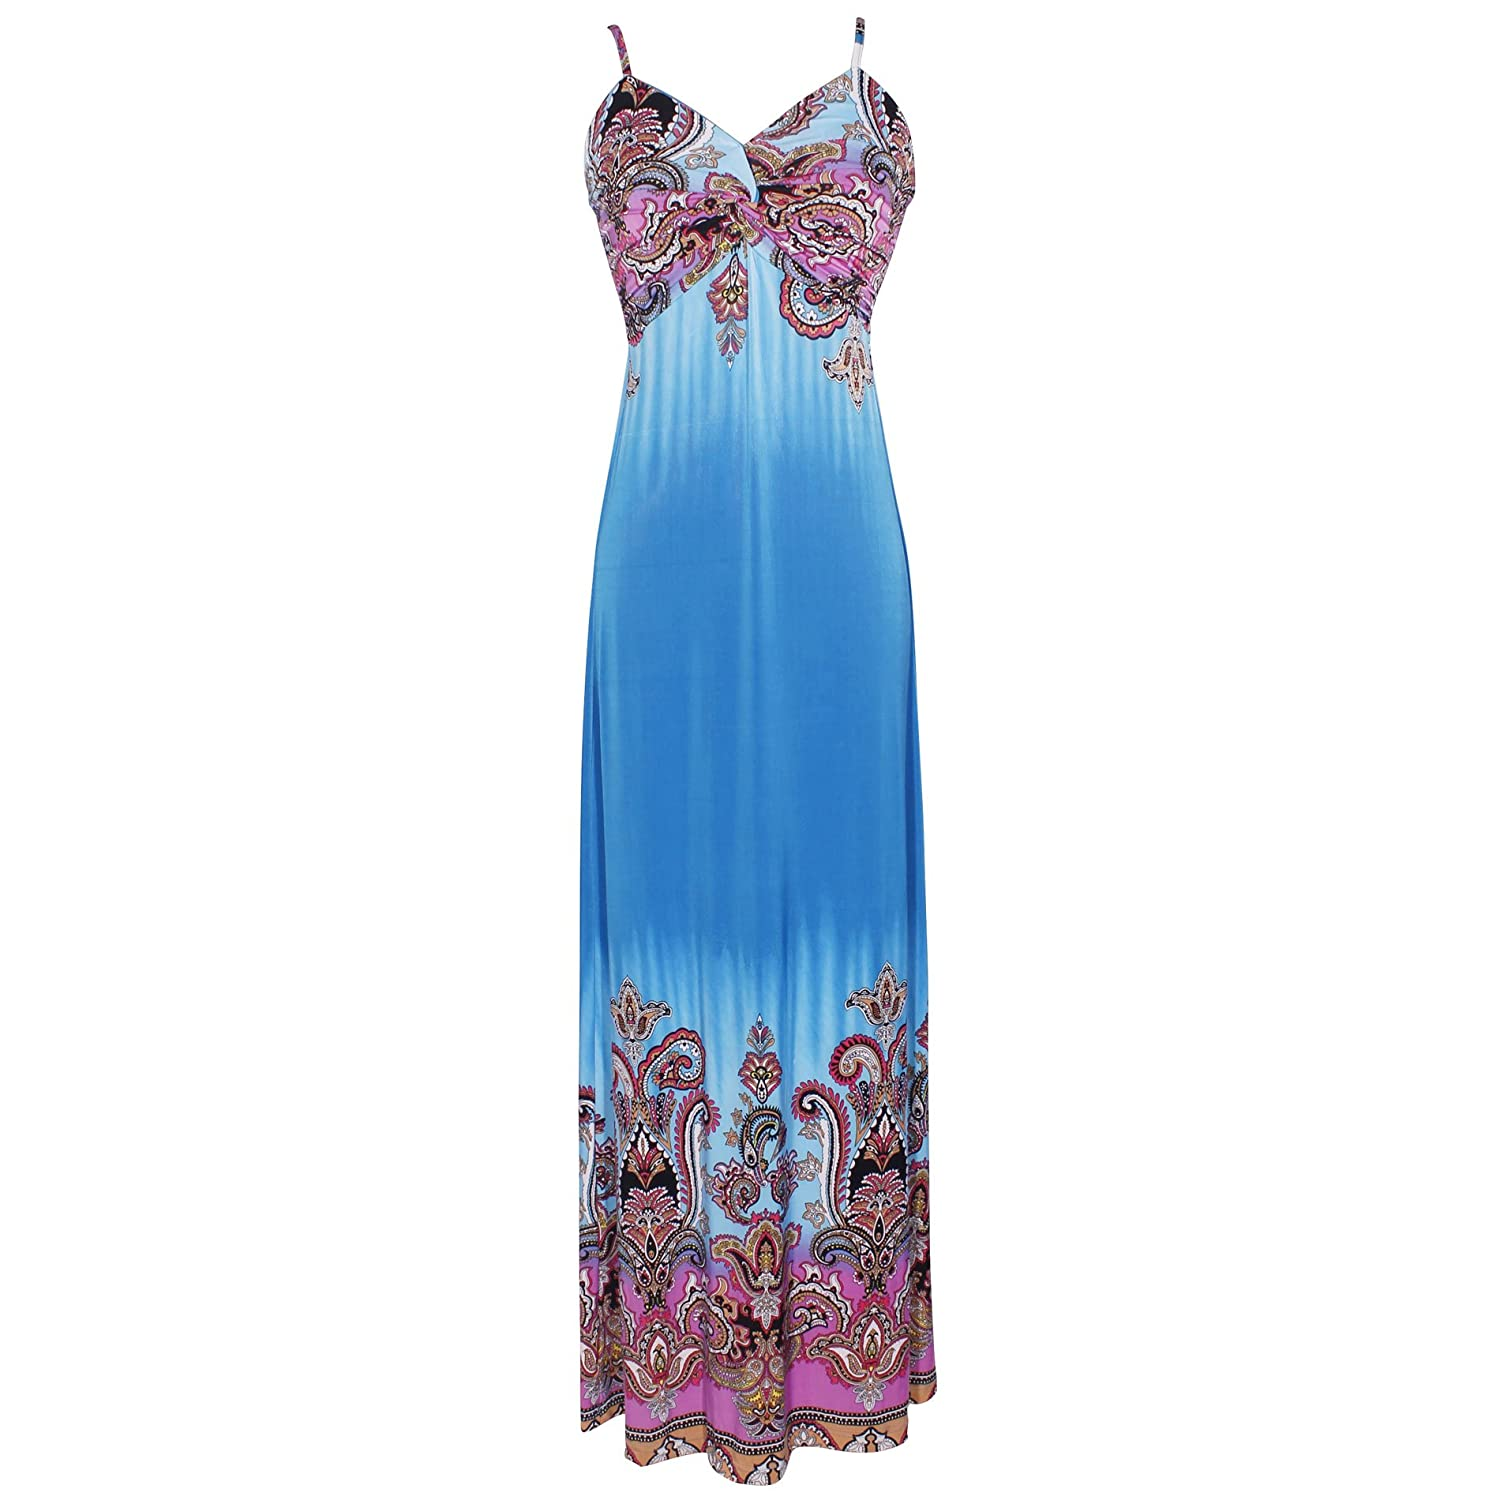 Maxi dresses for juniors in plus sizes are beautiful for summer style